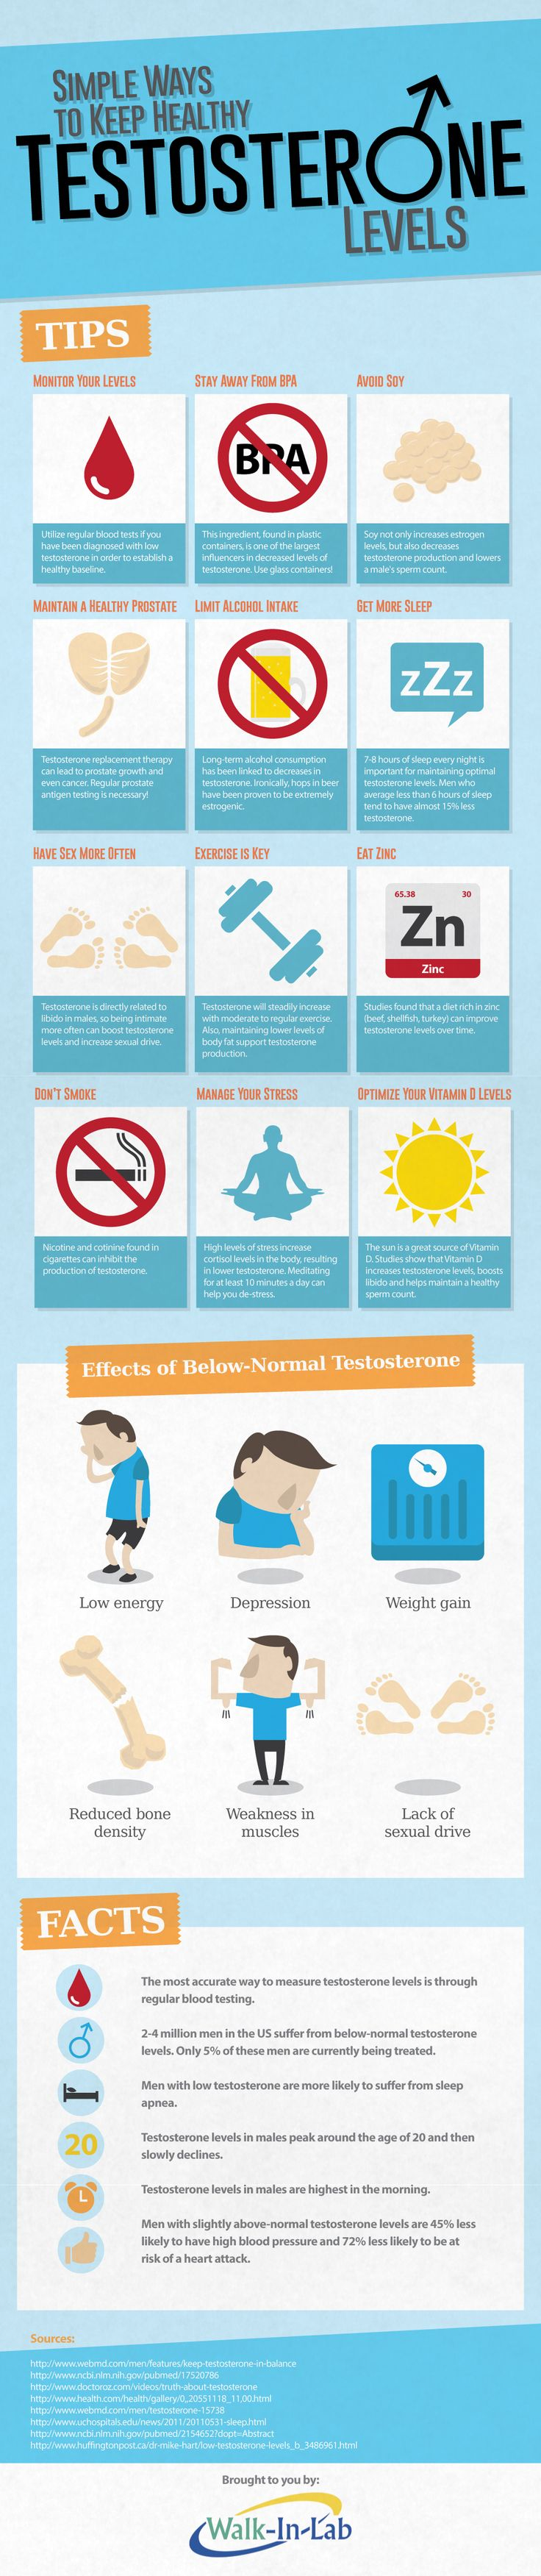 Tips to Maintain Healthy Testosterone Levels - Tipsographic